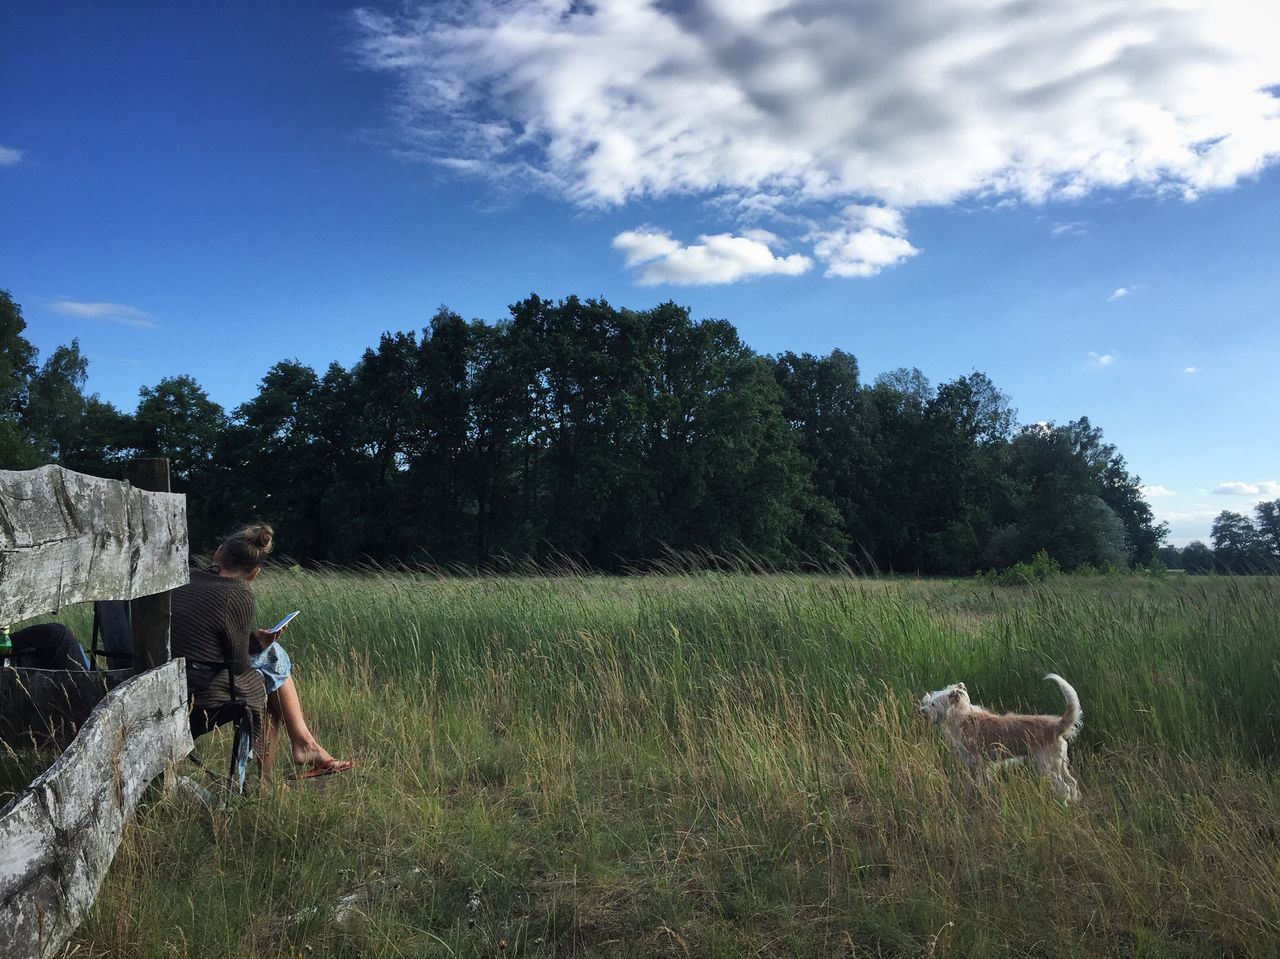 Serene evening Sky Pets Animal Themes Two People Togetherness Domestic Animals Dog Casual Clothing Day Leisure Activity Tree Real People Childhood Field Outdoors Grass Mammal Nature Cloud - Sky Boys Serenity Evening Dogs Family Brandenburg